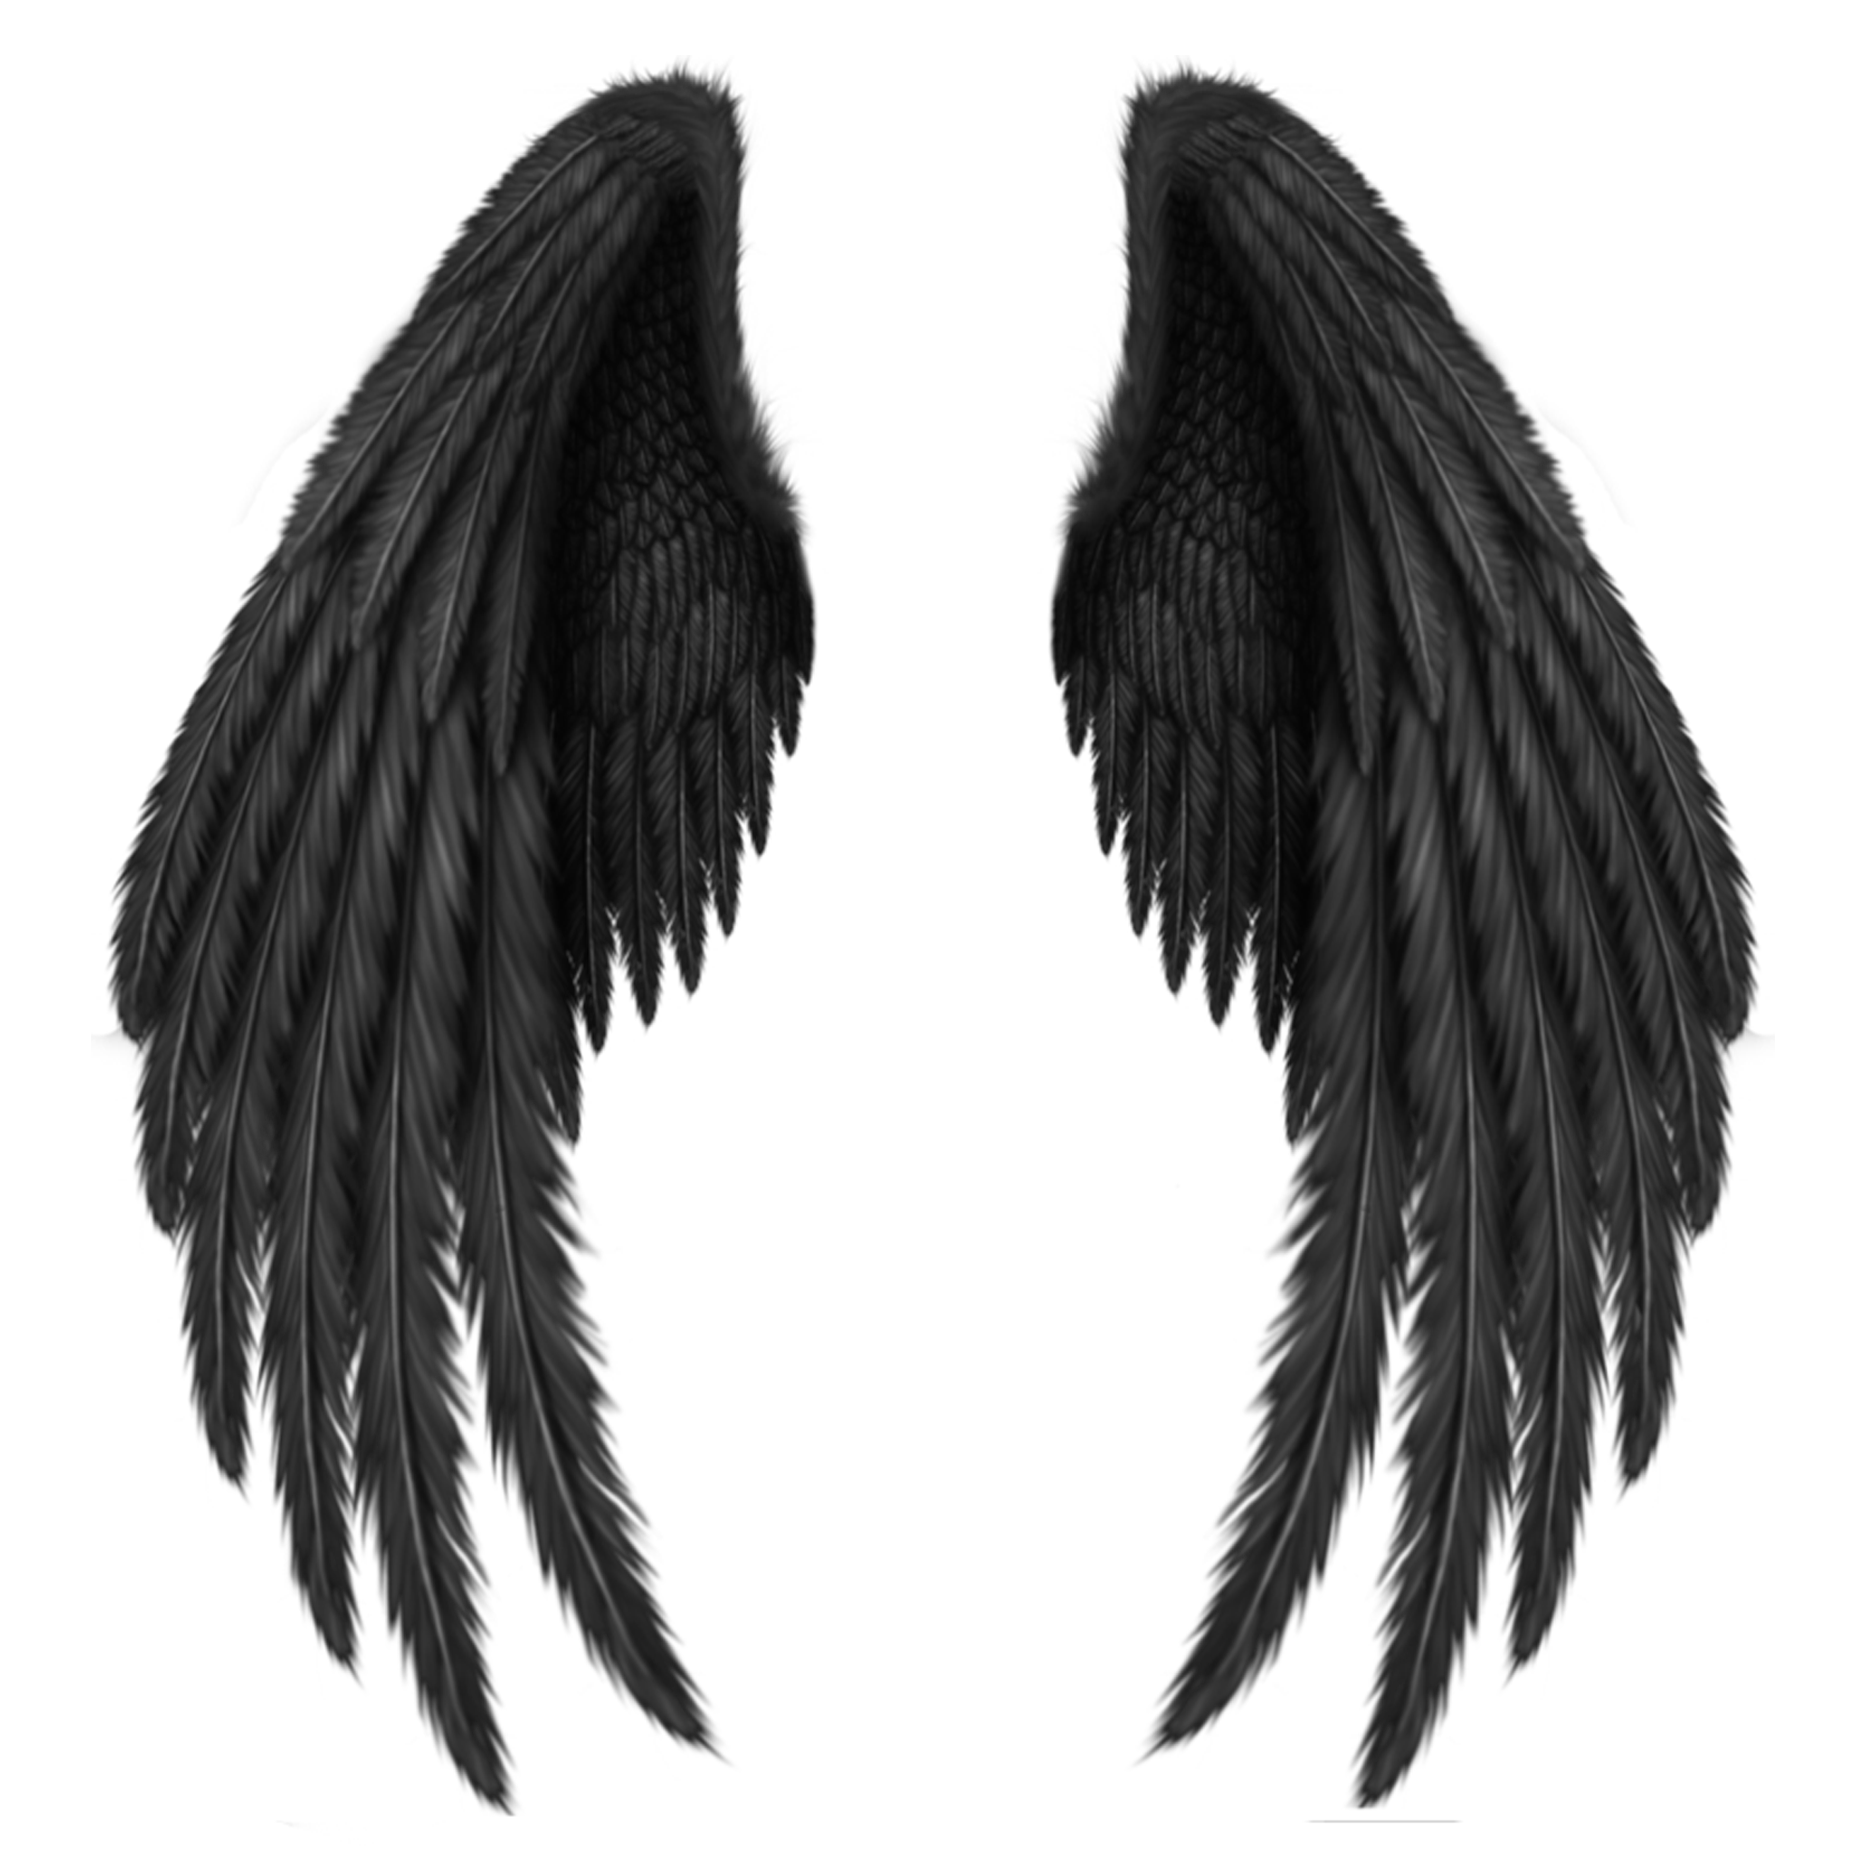 Transparent black png picture. Cross and wings clipart